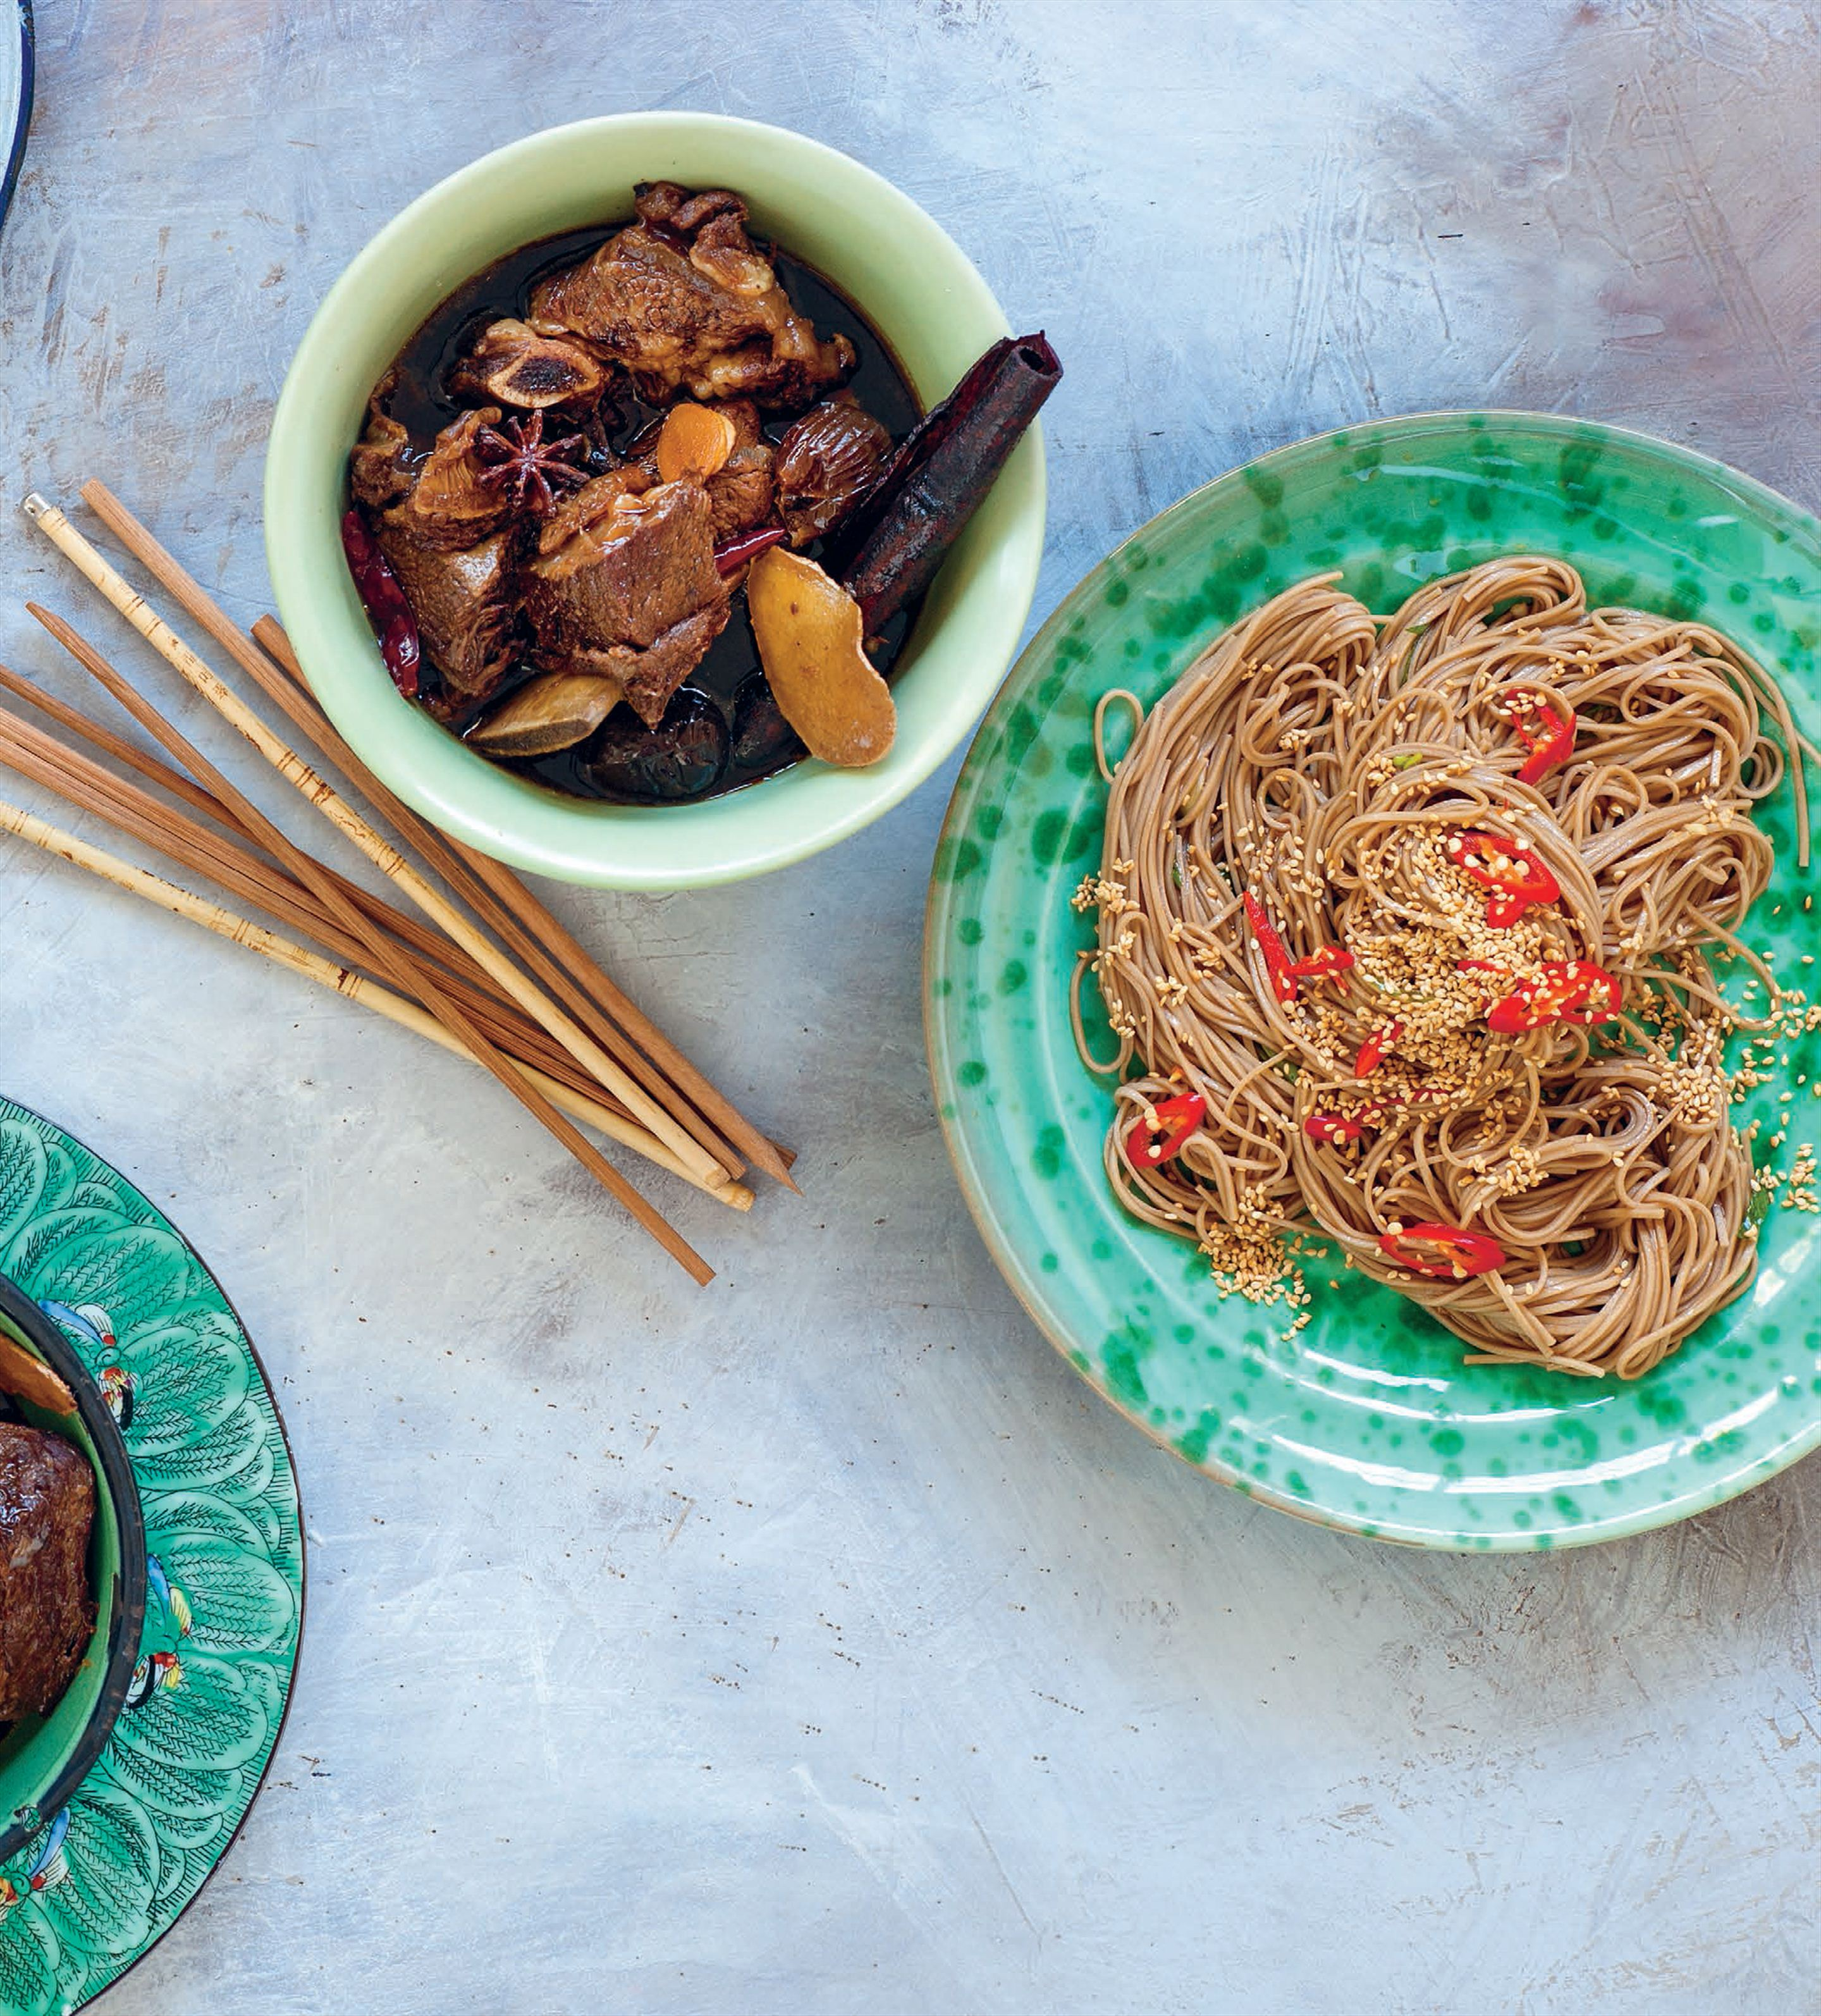 Spicy buckwheat noodles